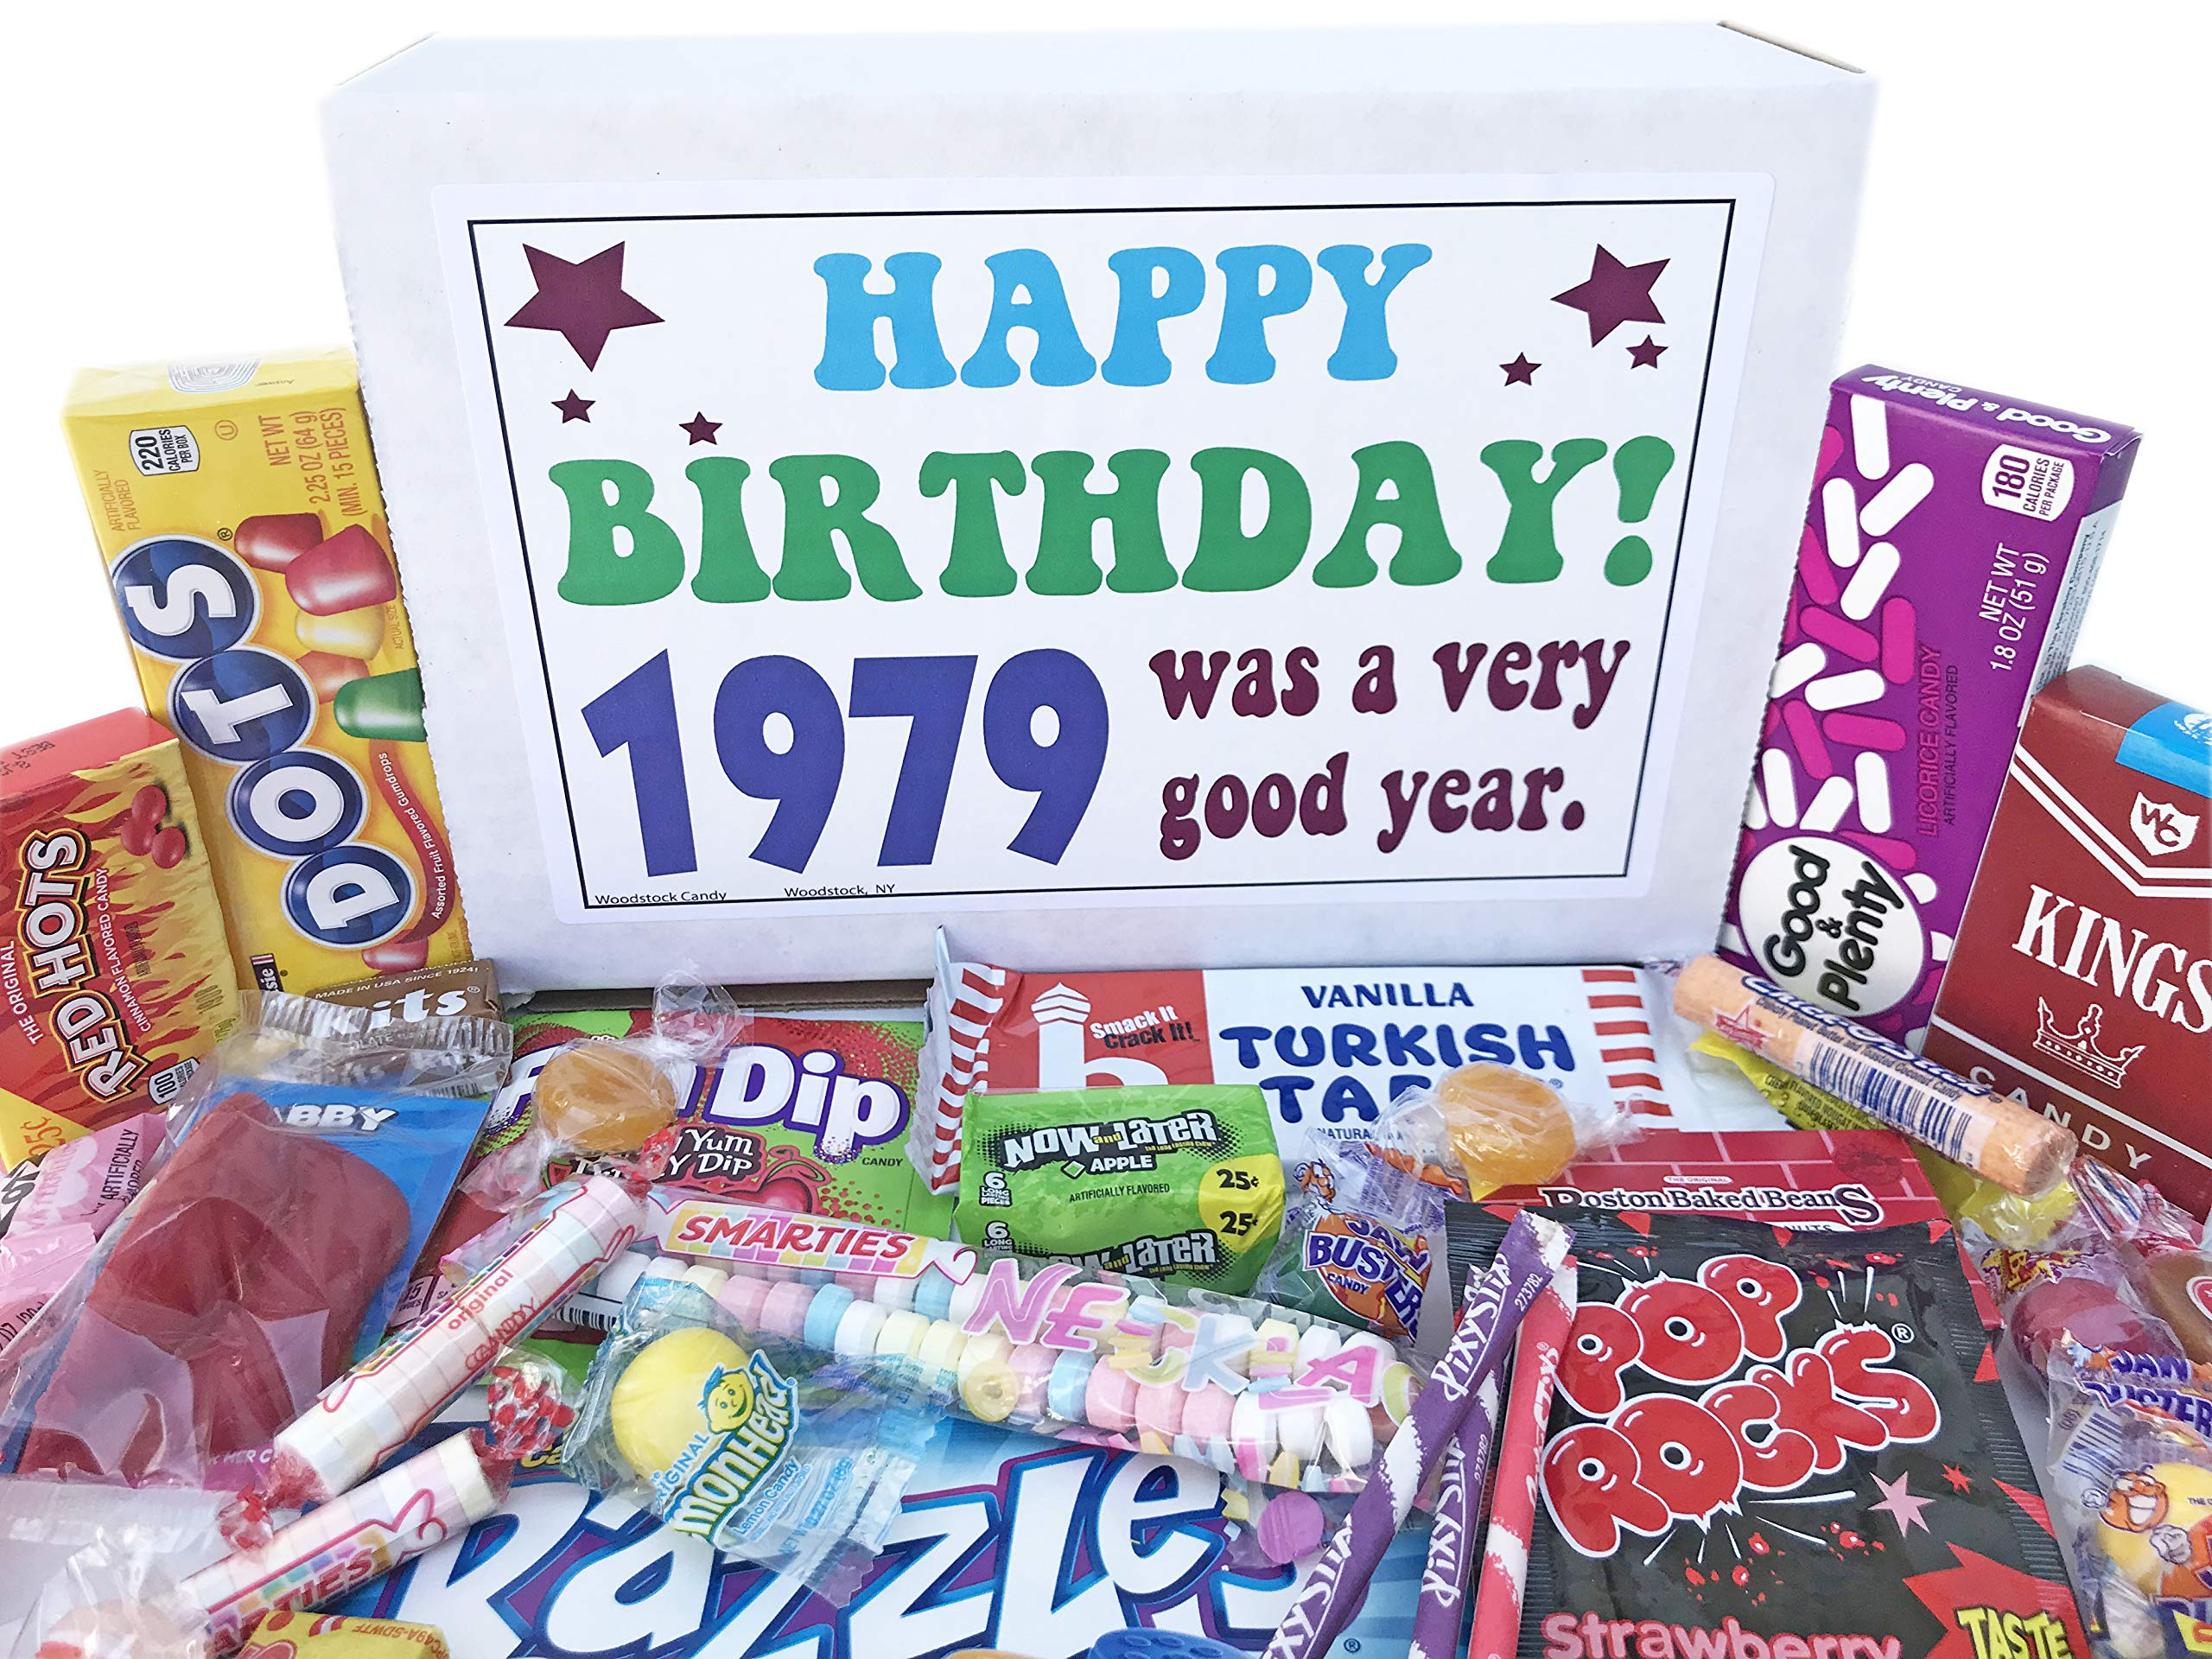 Woodstock Candy ~ 40th Birthday Ideas - Gift Box of Nostalgic Vintage Candy Assortment from Childhood - Birthday Gifts for 40 Year Old Men and Women Born 1979 Jr by Woodstock Candy